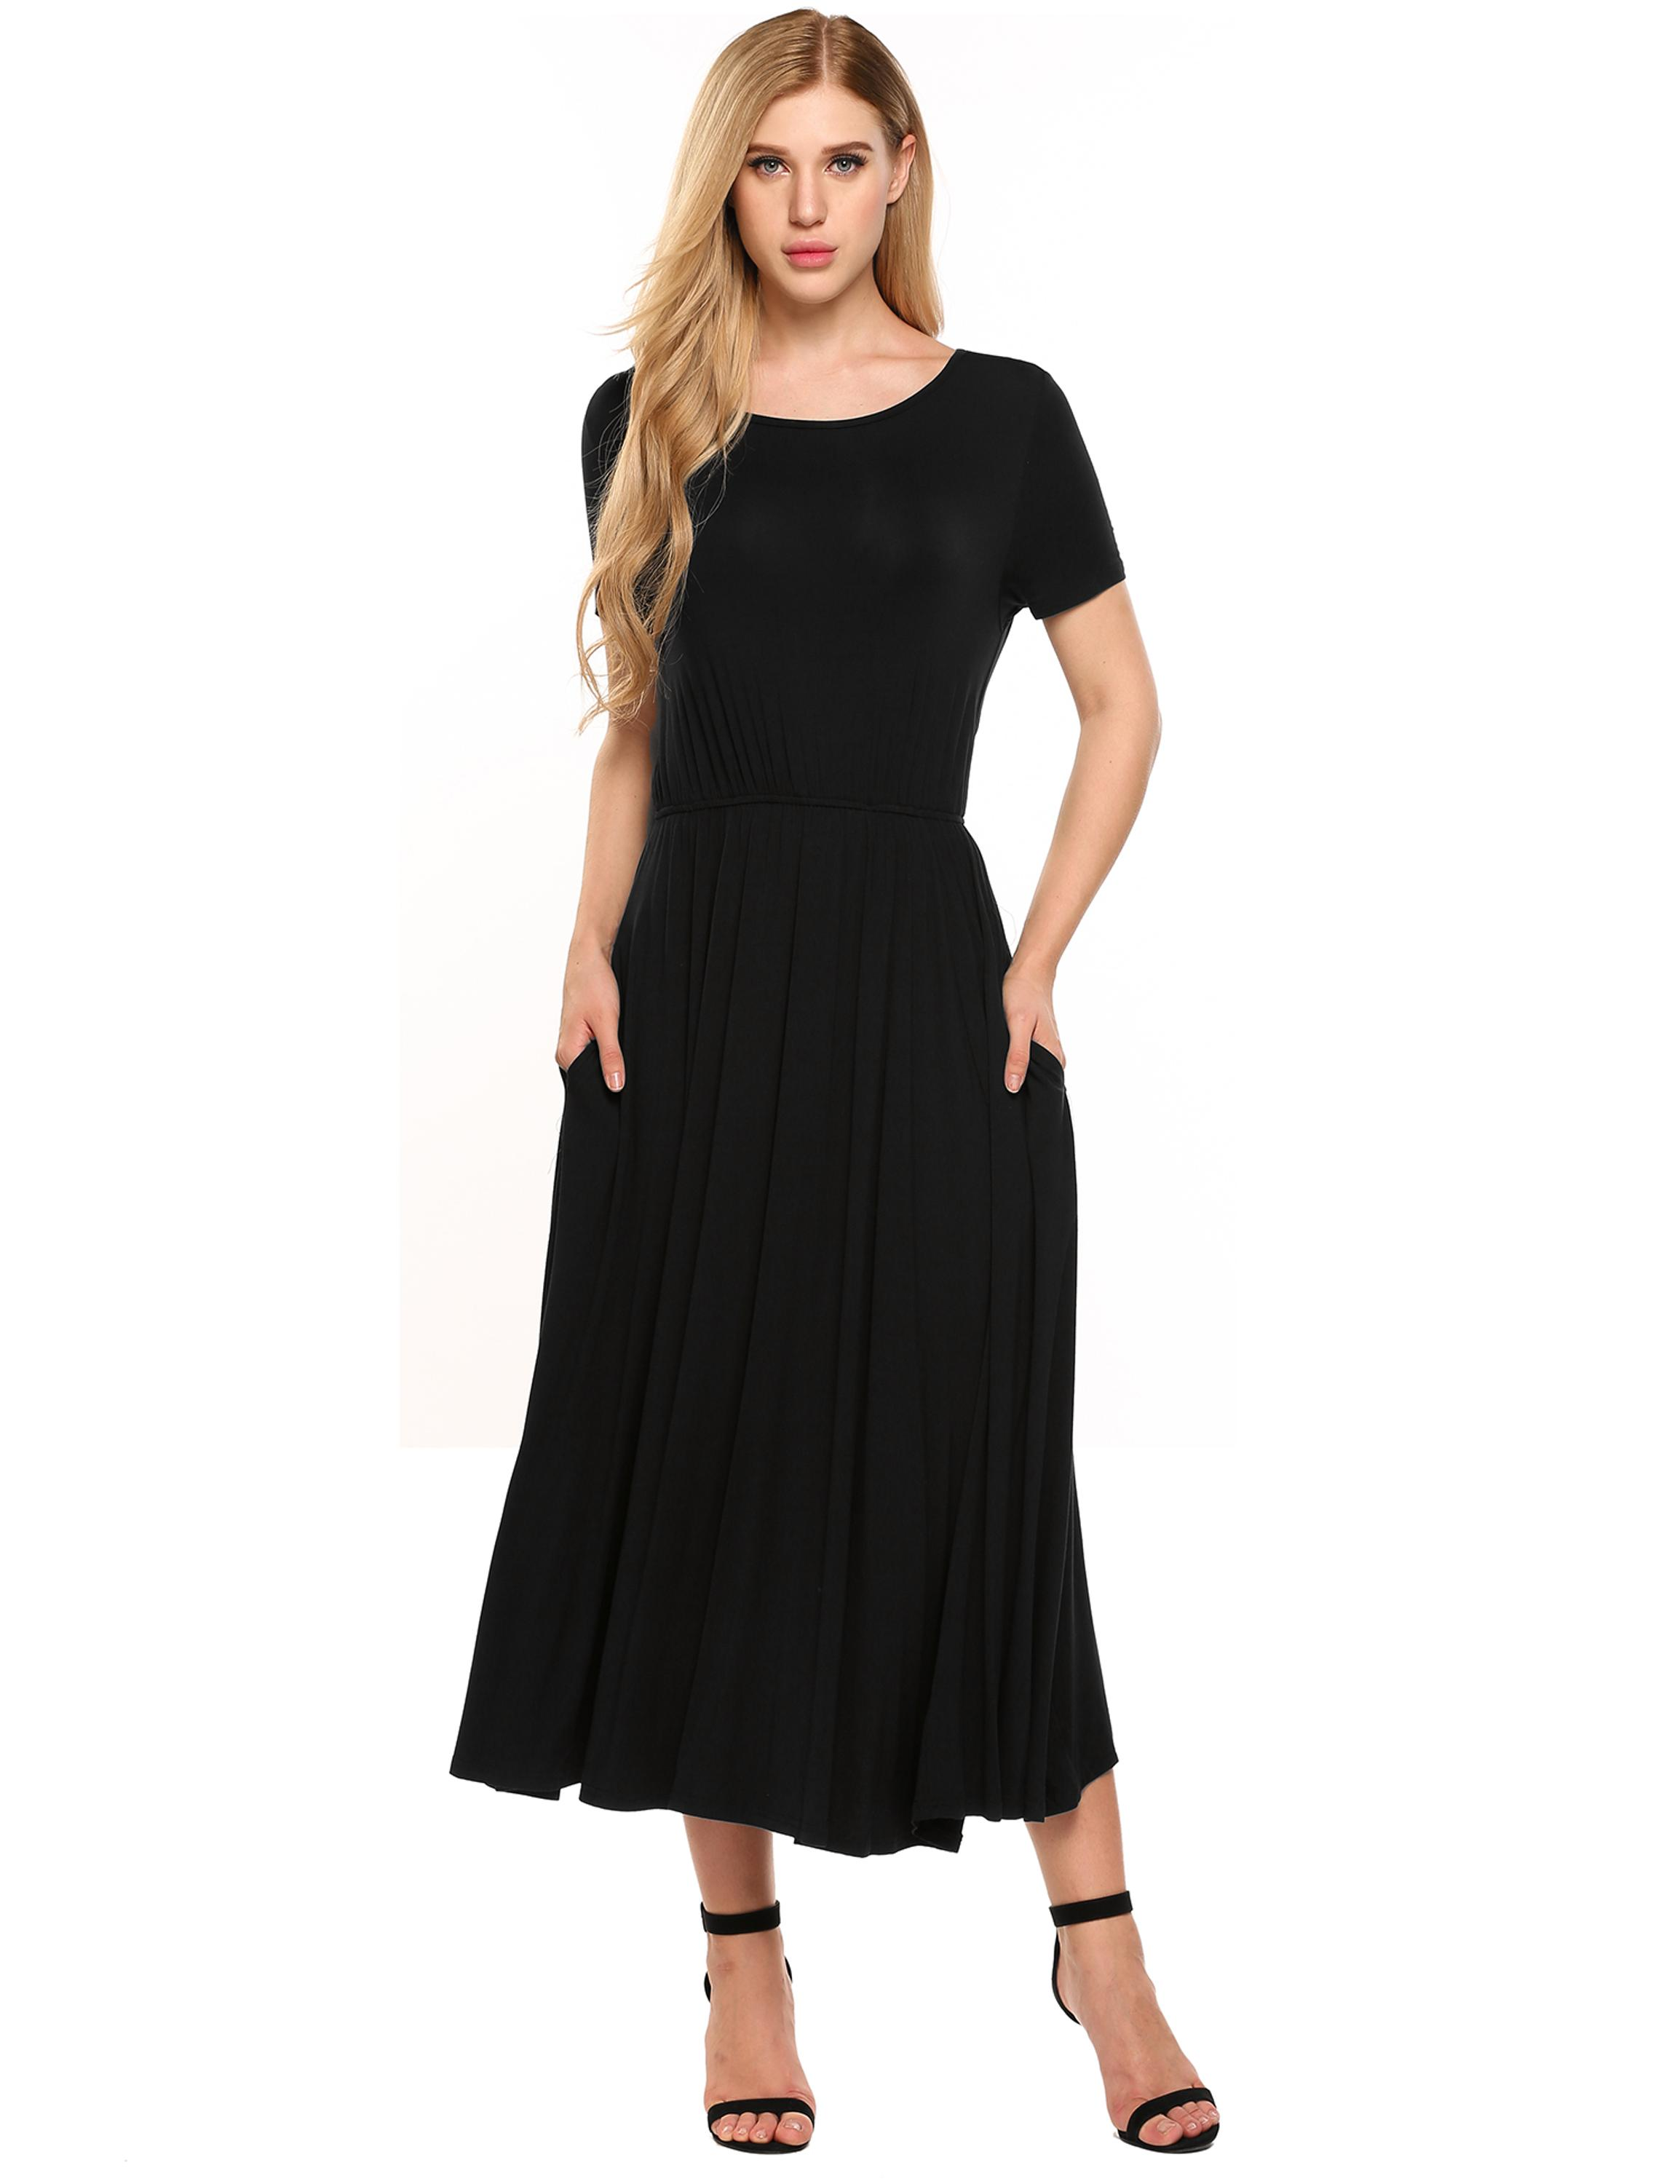 Short Sleeve Stretch Solid Casual Pleated Dress with Pockets